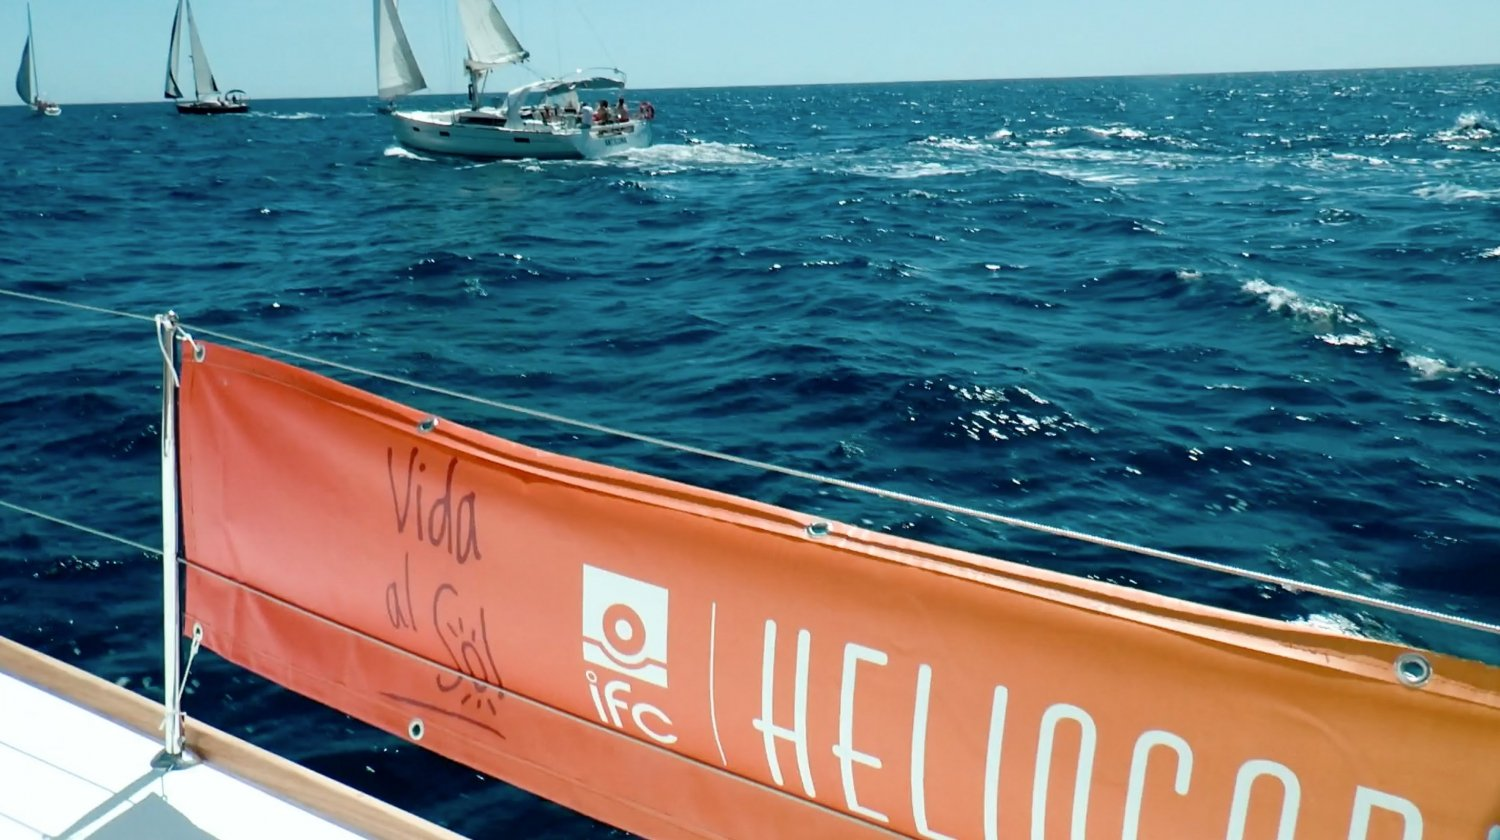 Heliocare Yacht Race in Denia and Javea